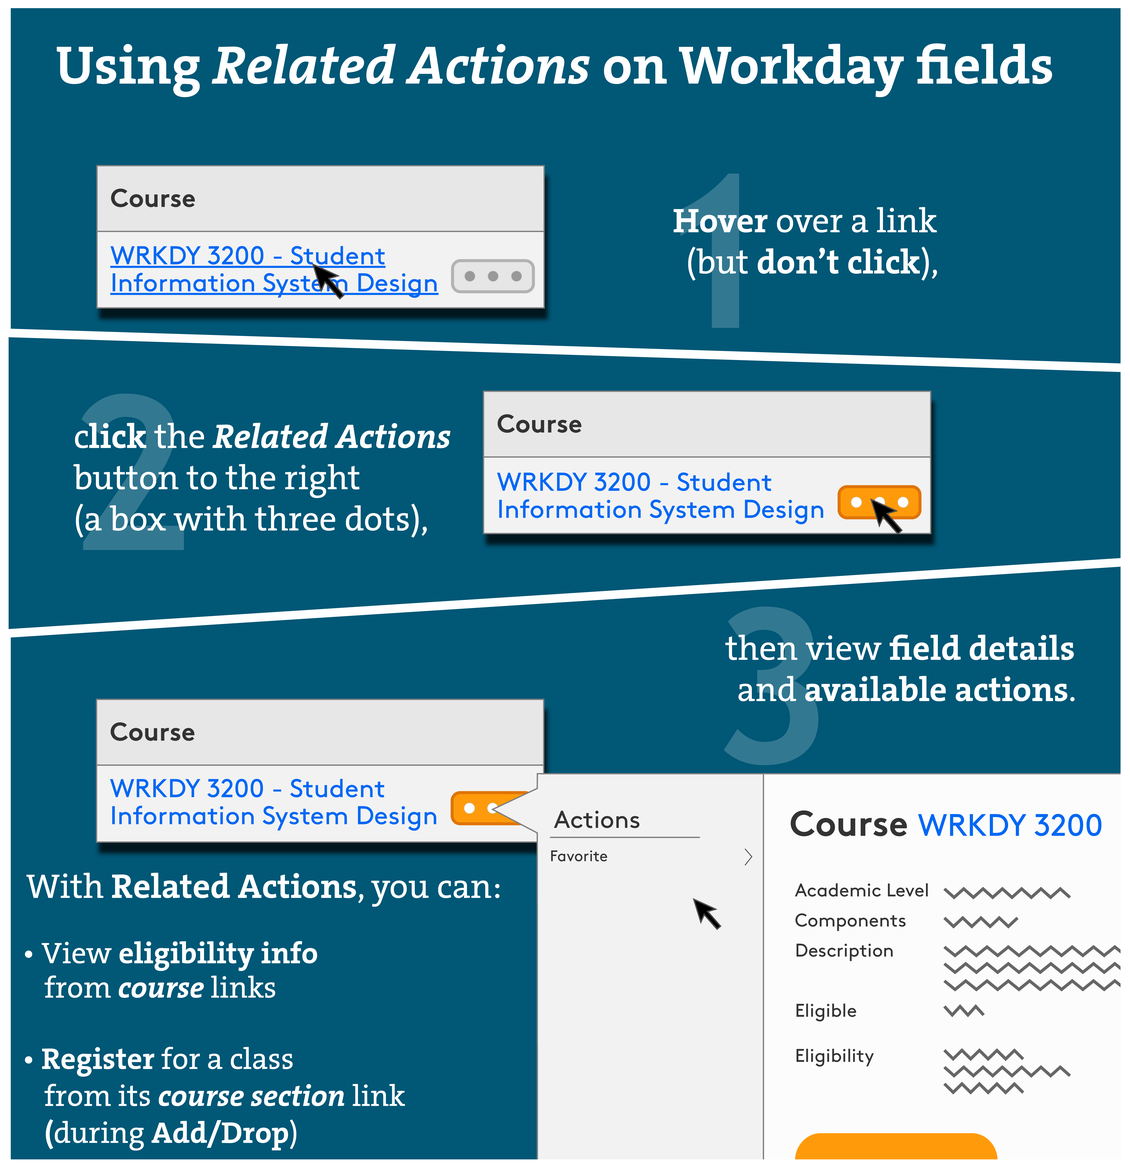 Related Actions Quick Guide_v2@2x.png